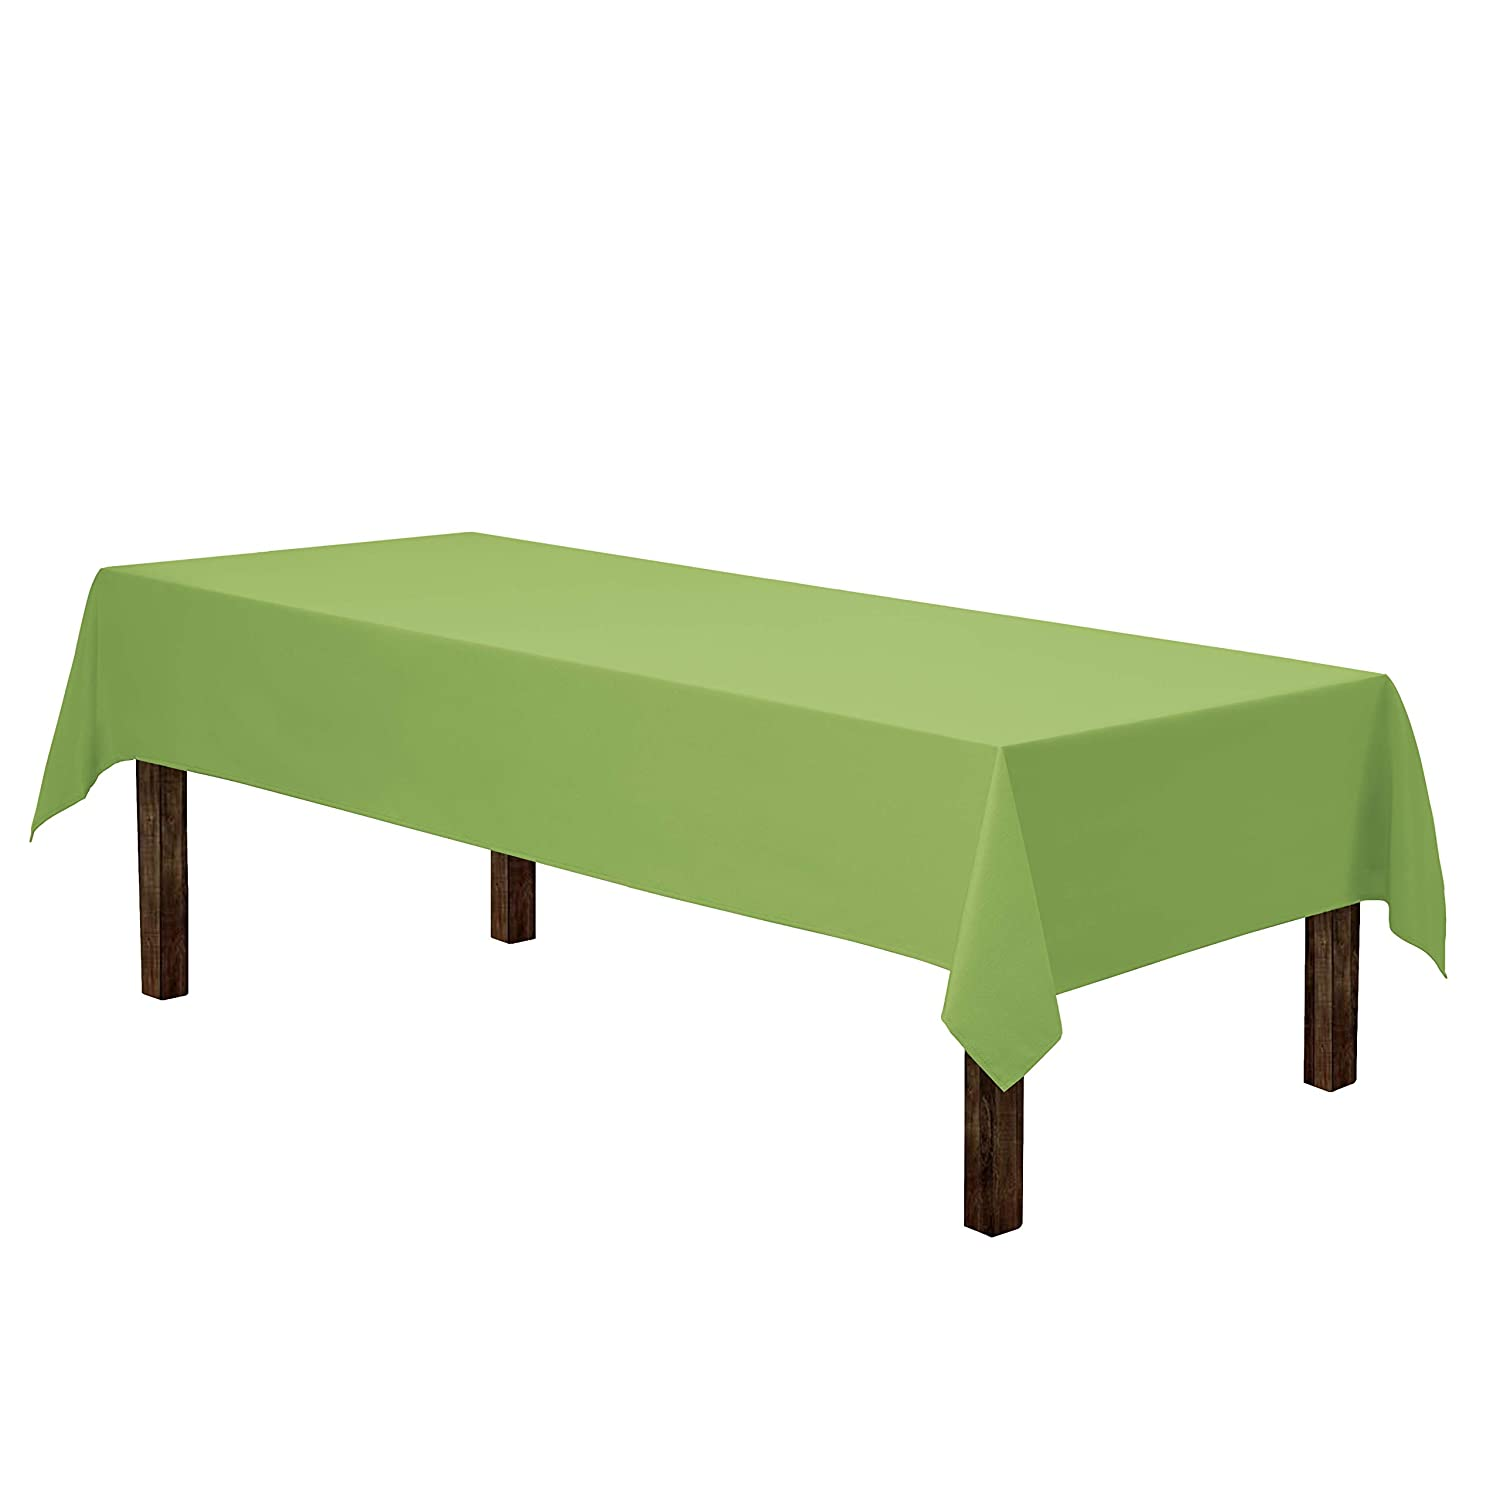 Gee Di Moda Rectangle Tablecloth - 60 x 126 Inch - Apple Green Rectangular Table Cloth for 8 Foot Table in Washable Polyester - Great for Buffet Table, Parties, Holiday Dinner, Wedding & More